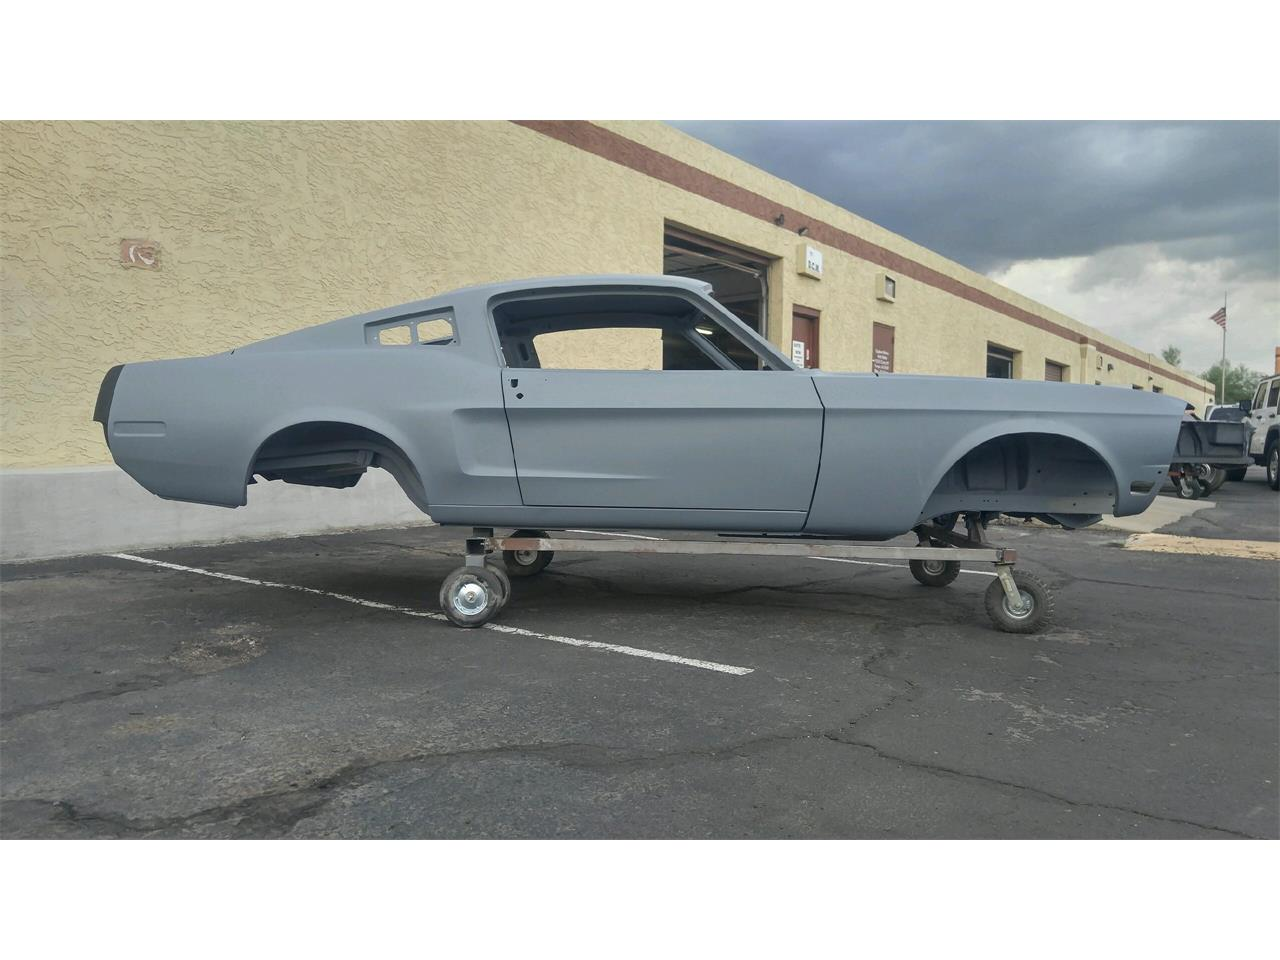 Large Picture of 1968 Ford Mustang Restored Body Shells located in Arizona - $16,700.00 - JP9Q